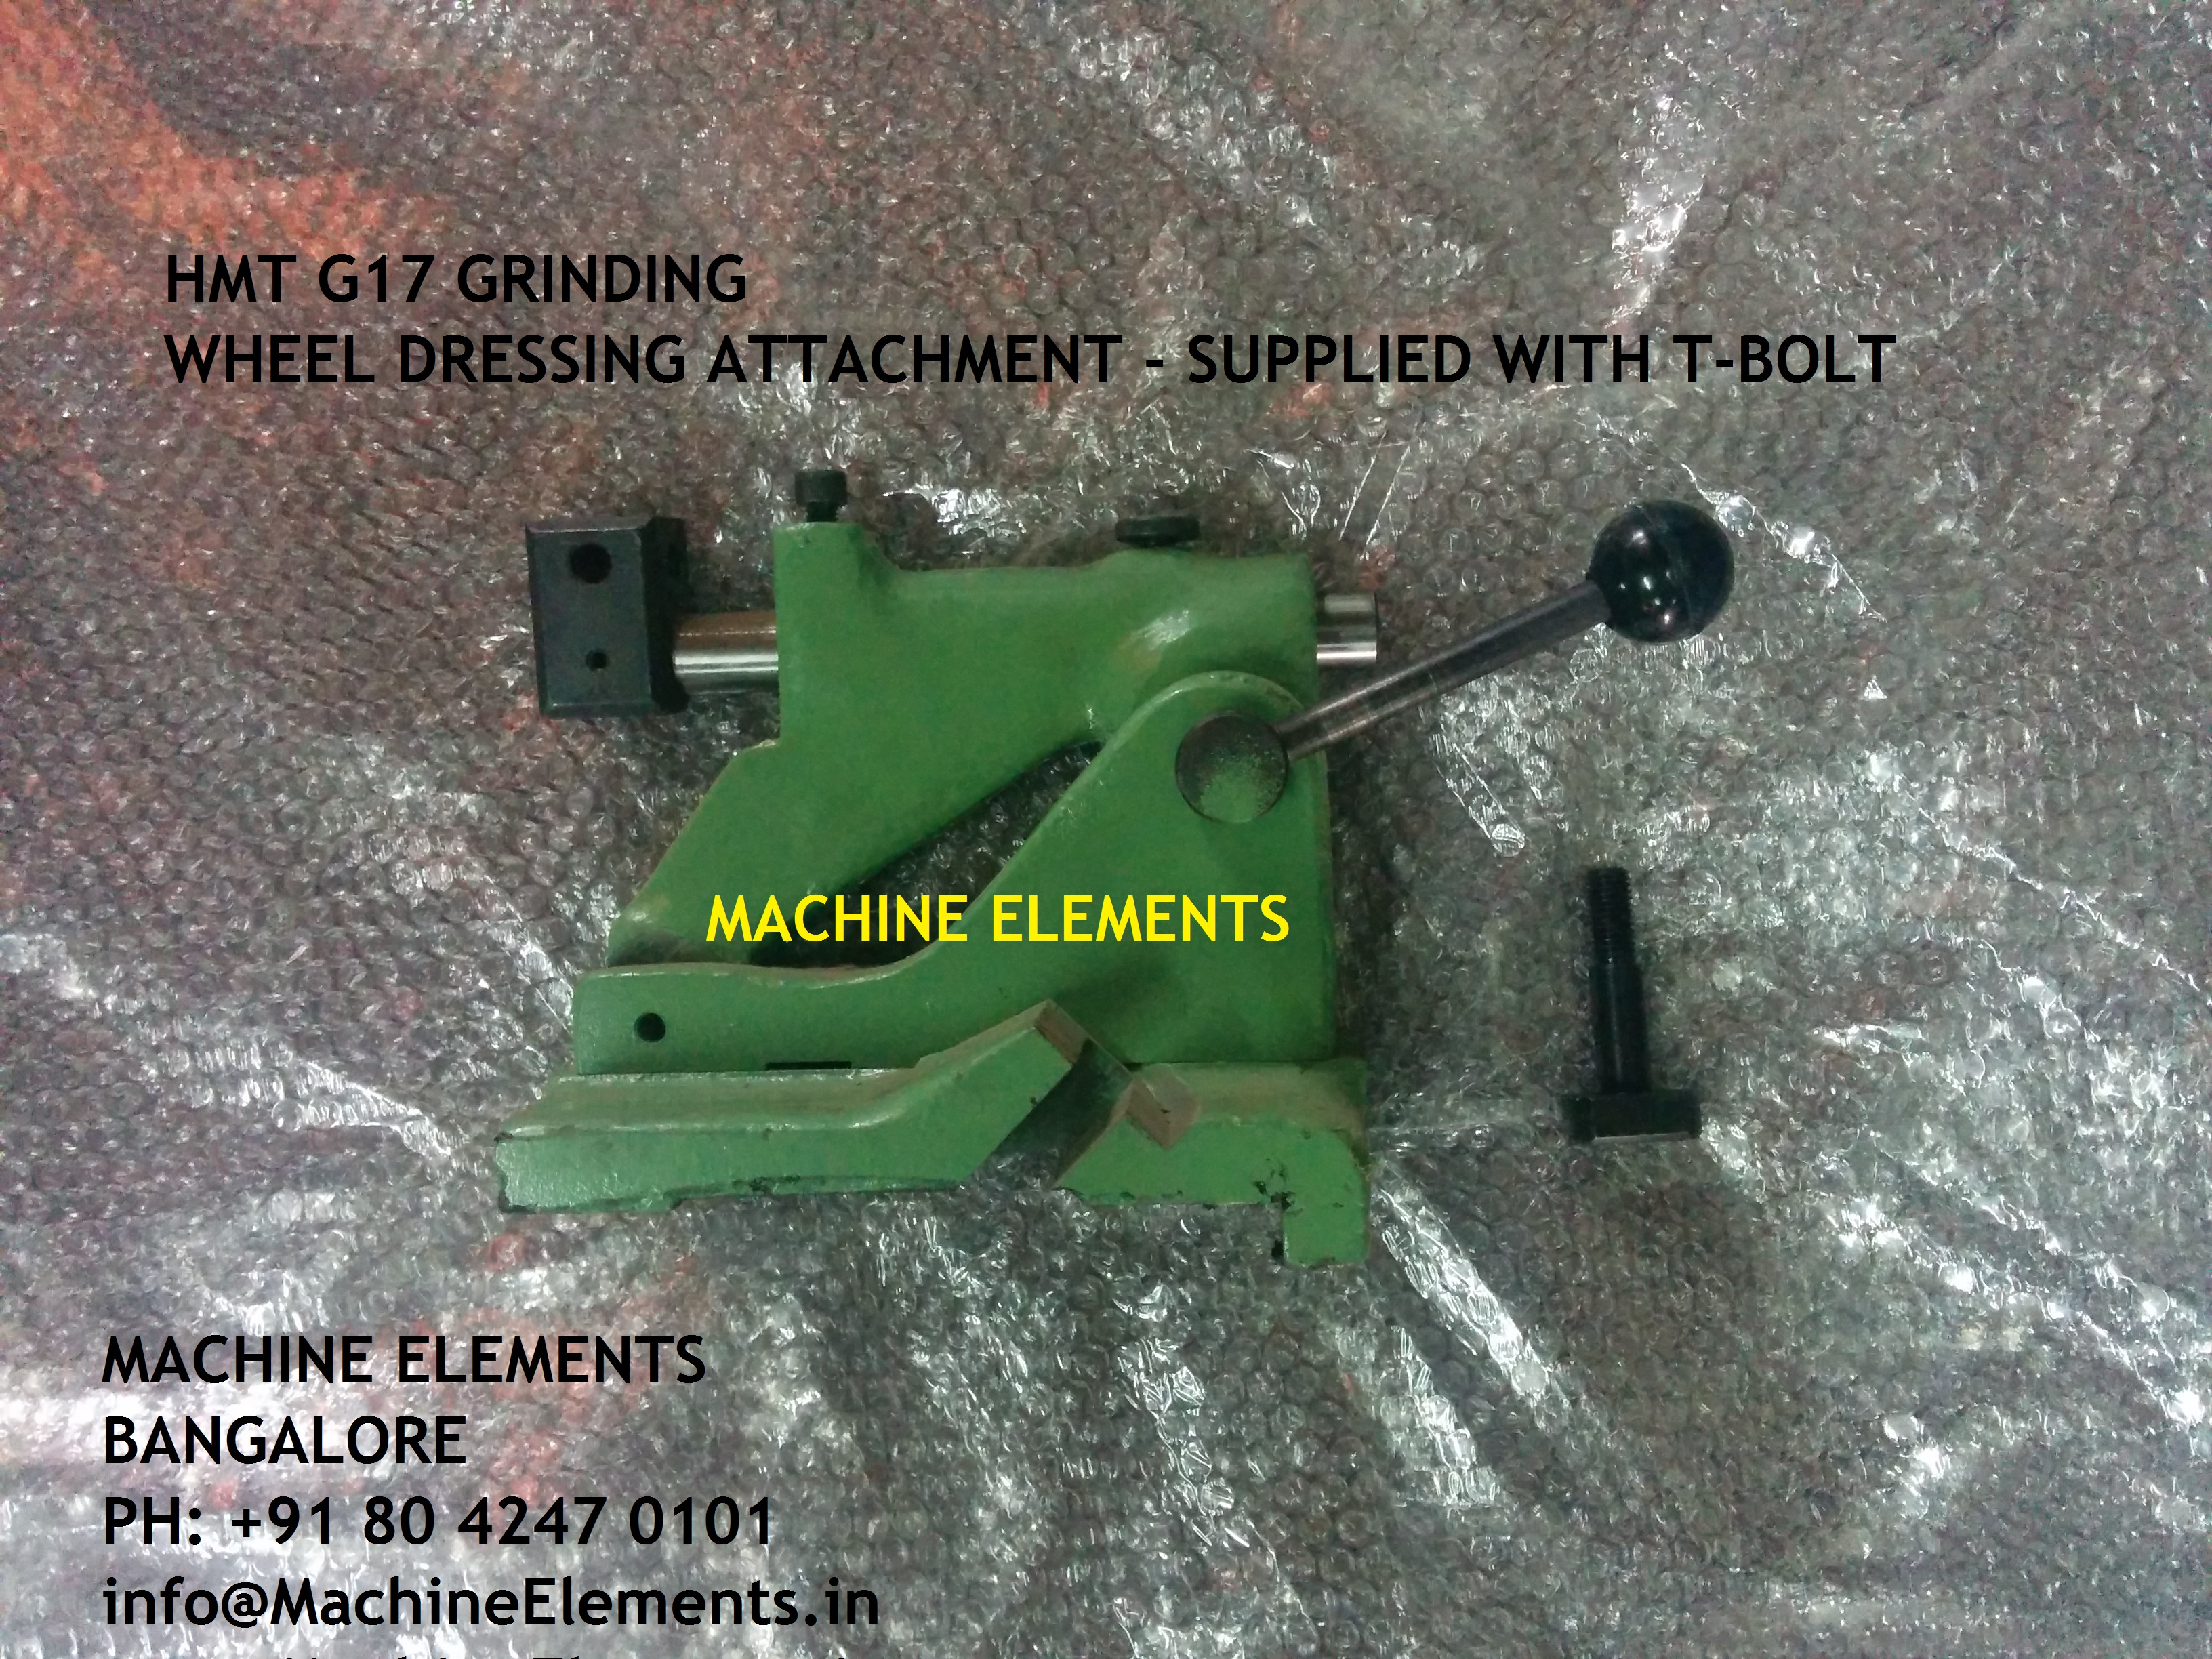 dressing attachment - dresser - G17